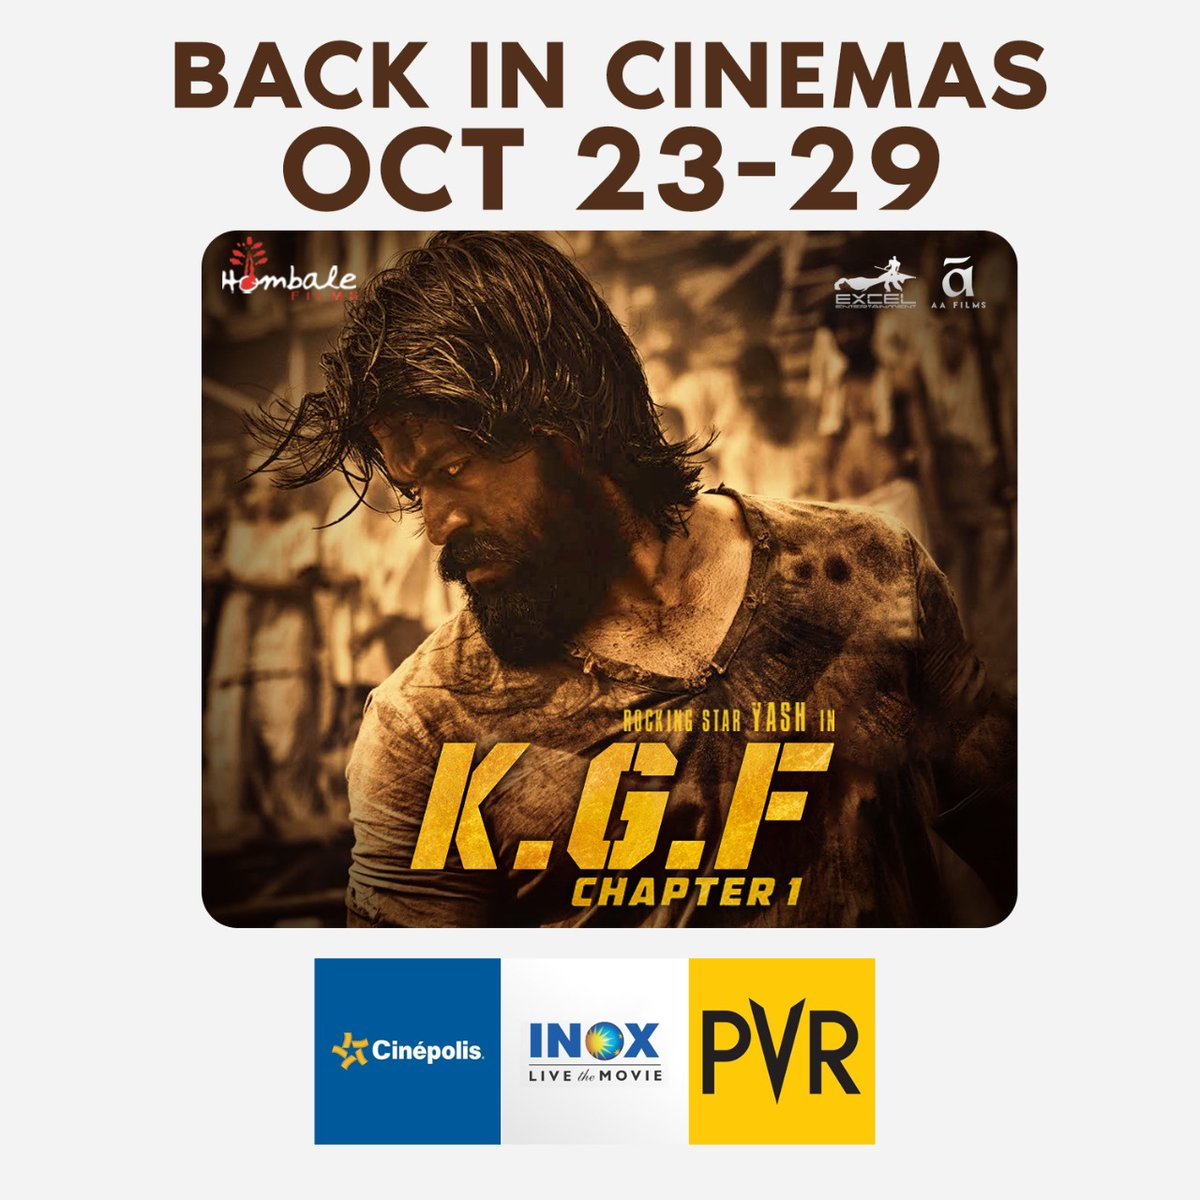 Catch the re-release of #KGFChapter1 at cinemas near you 📽️  Now showing at @_PVRCinemas @INOXMovies @IndiaCinepolis.    @VKiragandur @TheNameIsYash @SrinidhiShetty7 @prashanth_neel @hombalefilms @excelmovies @ritesh_sid @FarOutAkhtar https://t.co/R7Z8cs9FSp